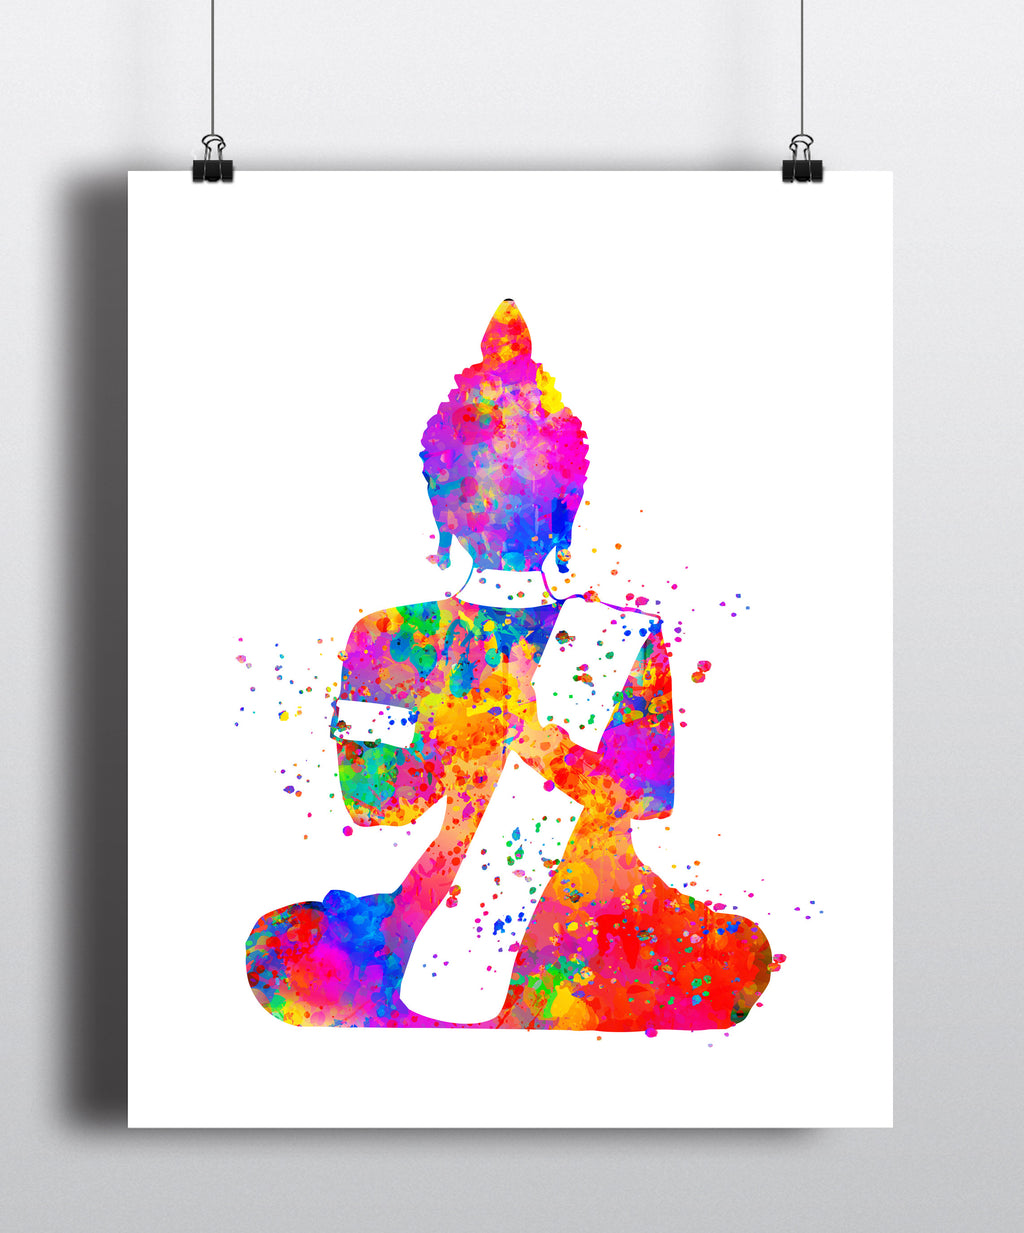 Buddha Watercolor Art Print - Unframed